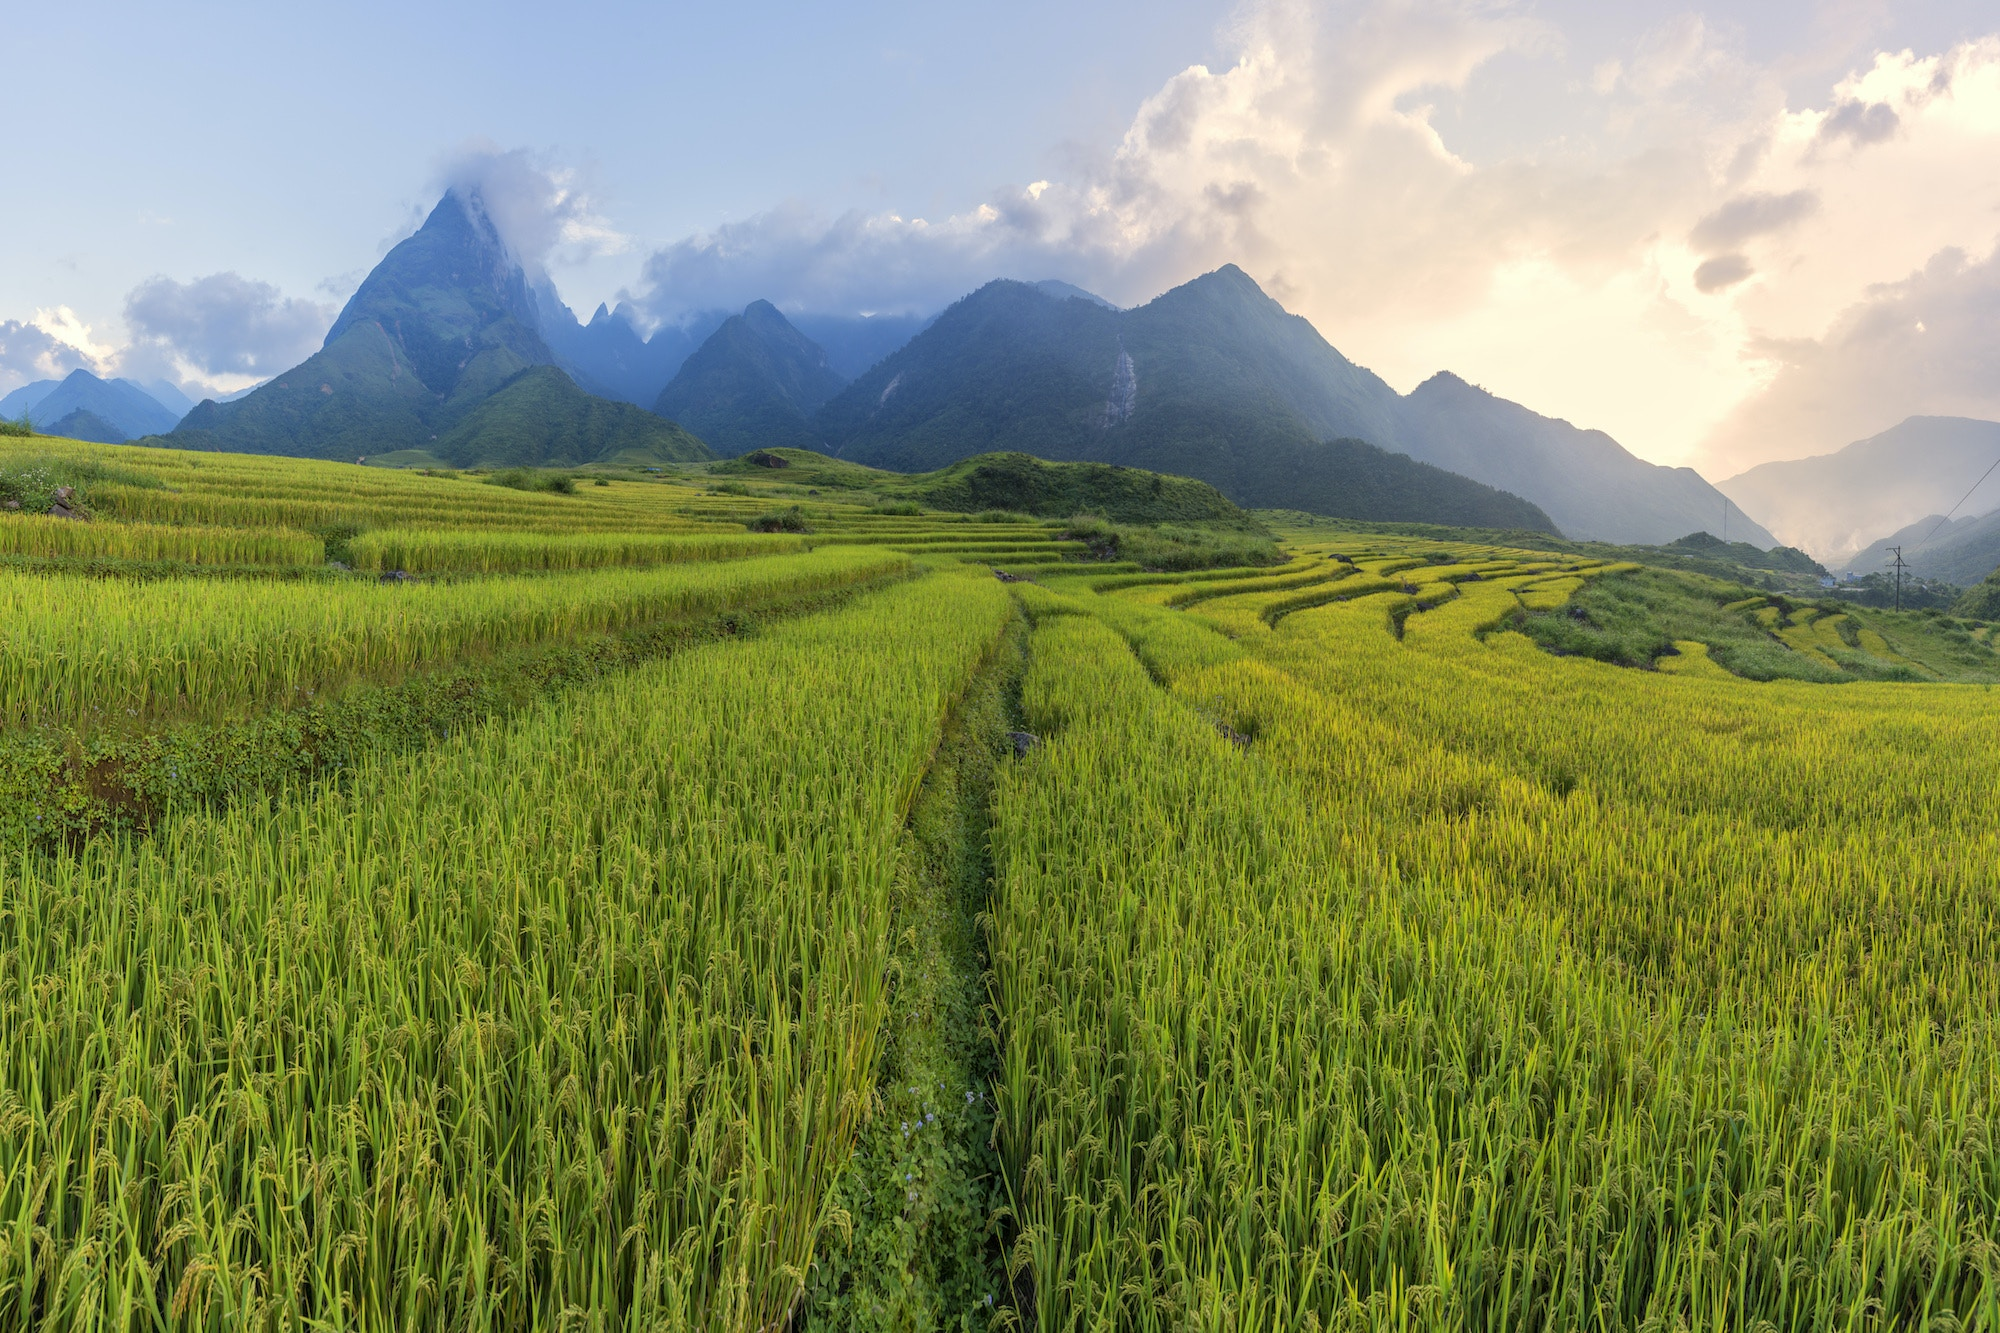 Green rice terraces, with Fansipan Mountain in the background © Ratnakorn Piyasirisorost / Getty Images.